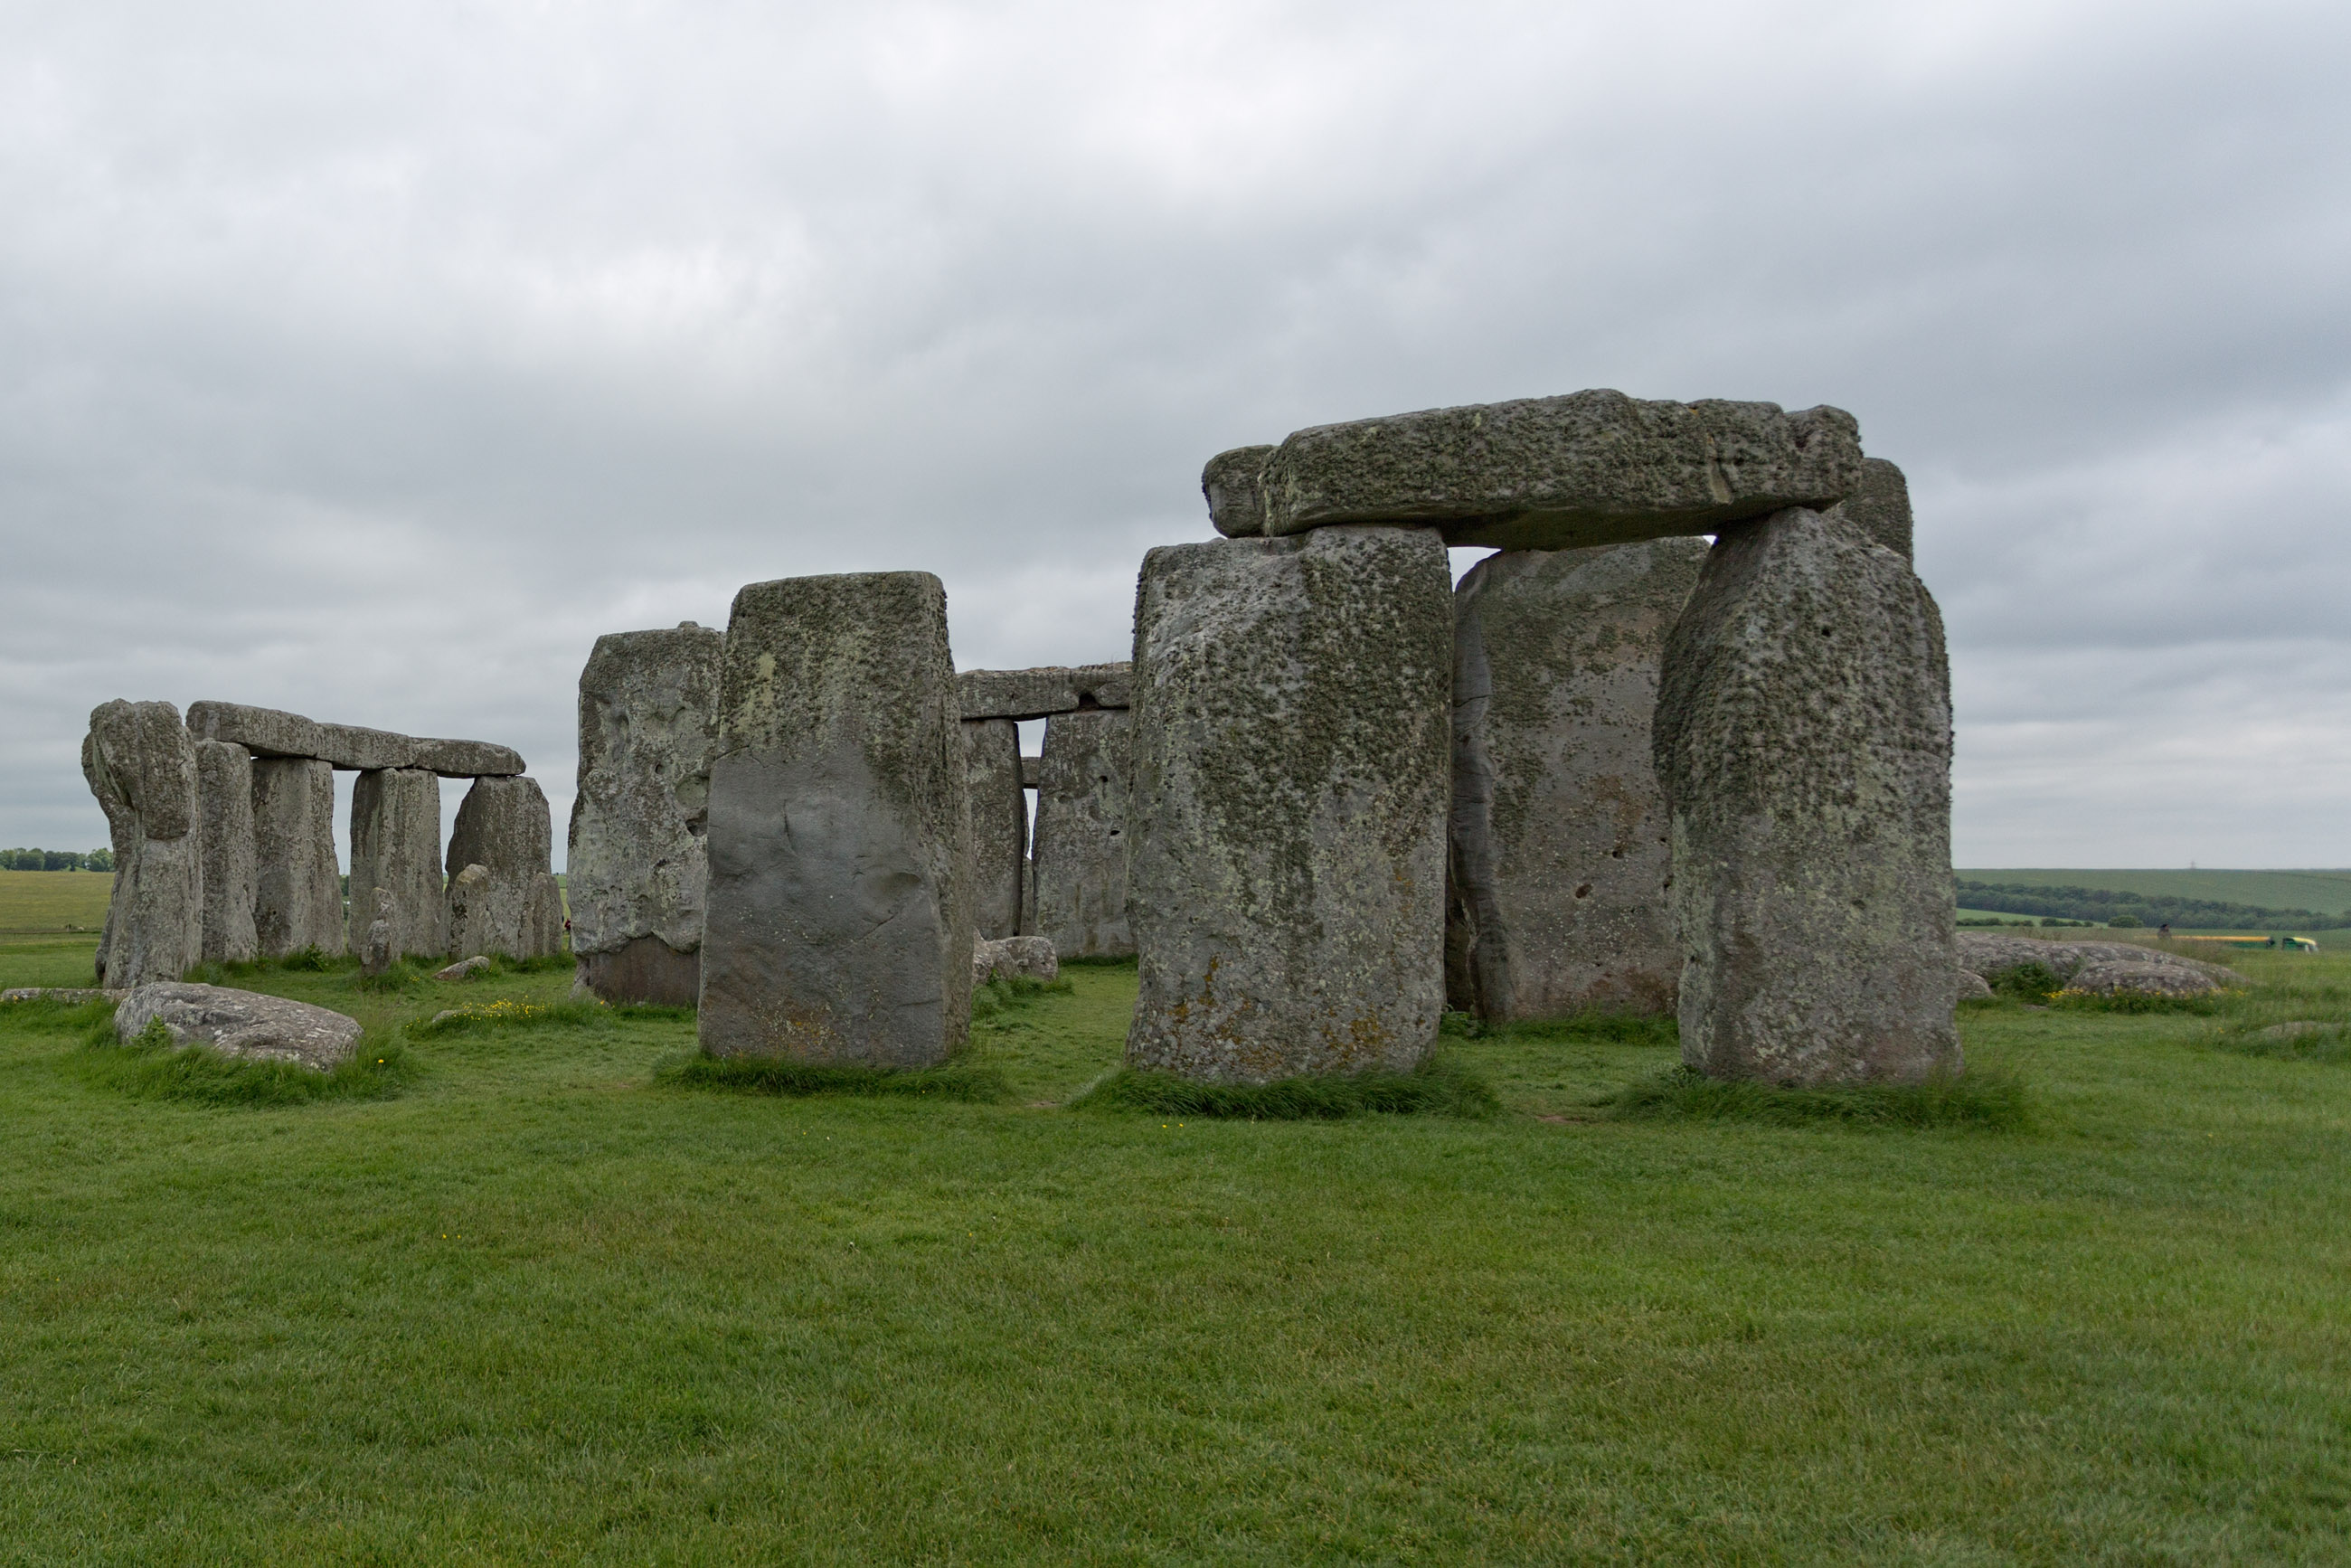 Stonehenge, Ancient, Site, Pastoral, Prehistoric, HQ Photo